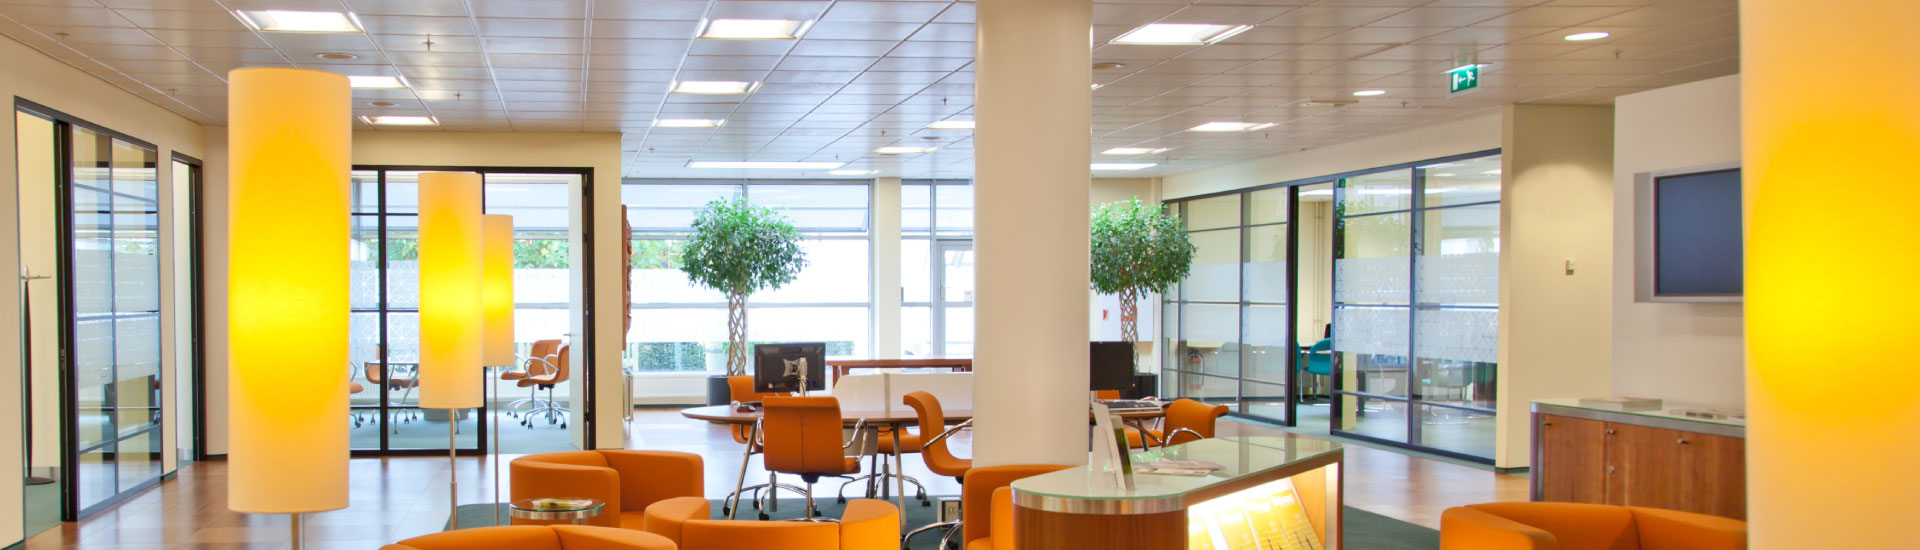 Lobby LED lighting and lighting controls lower costs and qualify for utility rebates